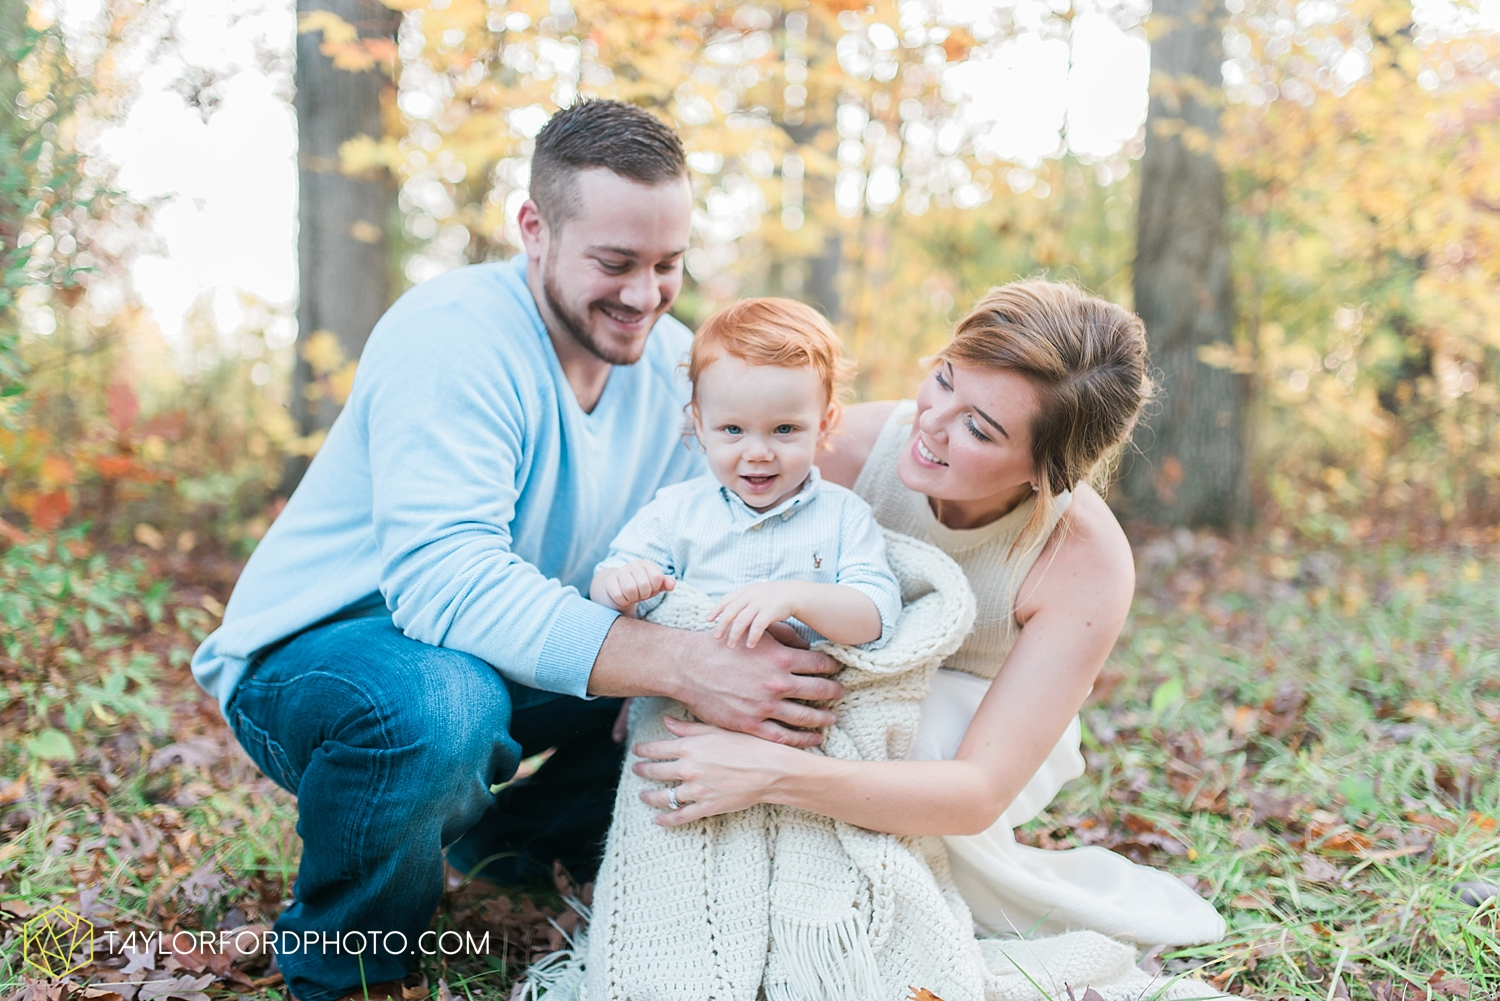 huntertown_indiana_family_photographer_taylor_ford_3611.jpg